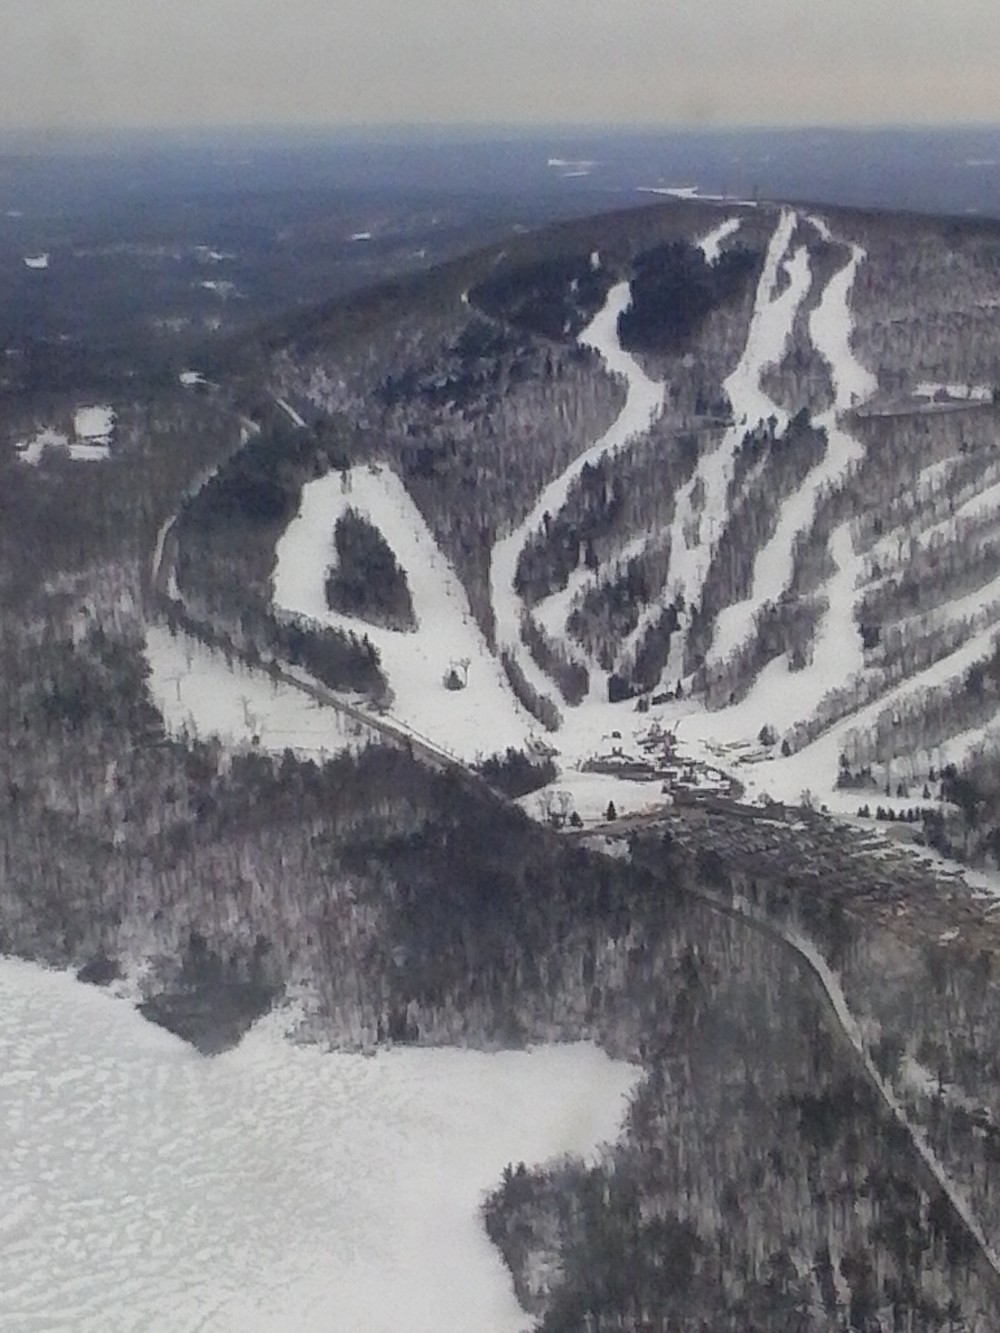 Mt. Wachussett Ski Slopes